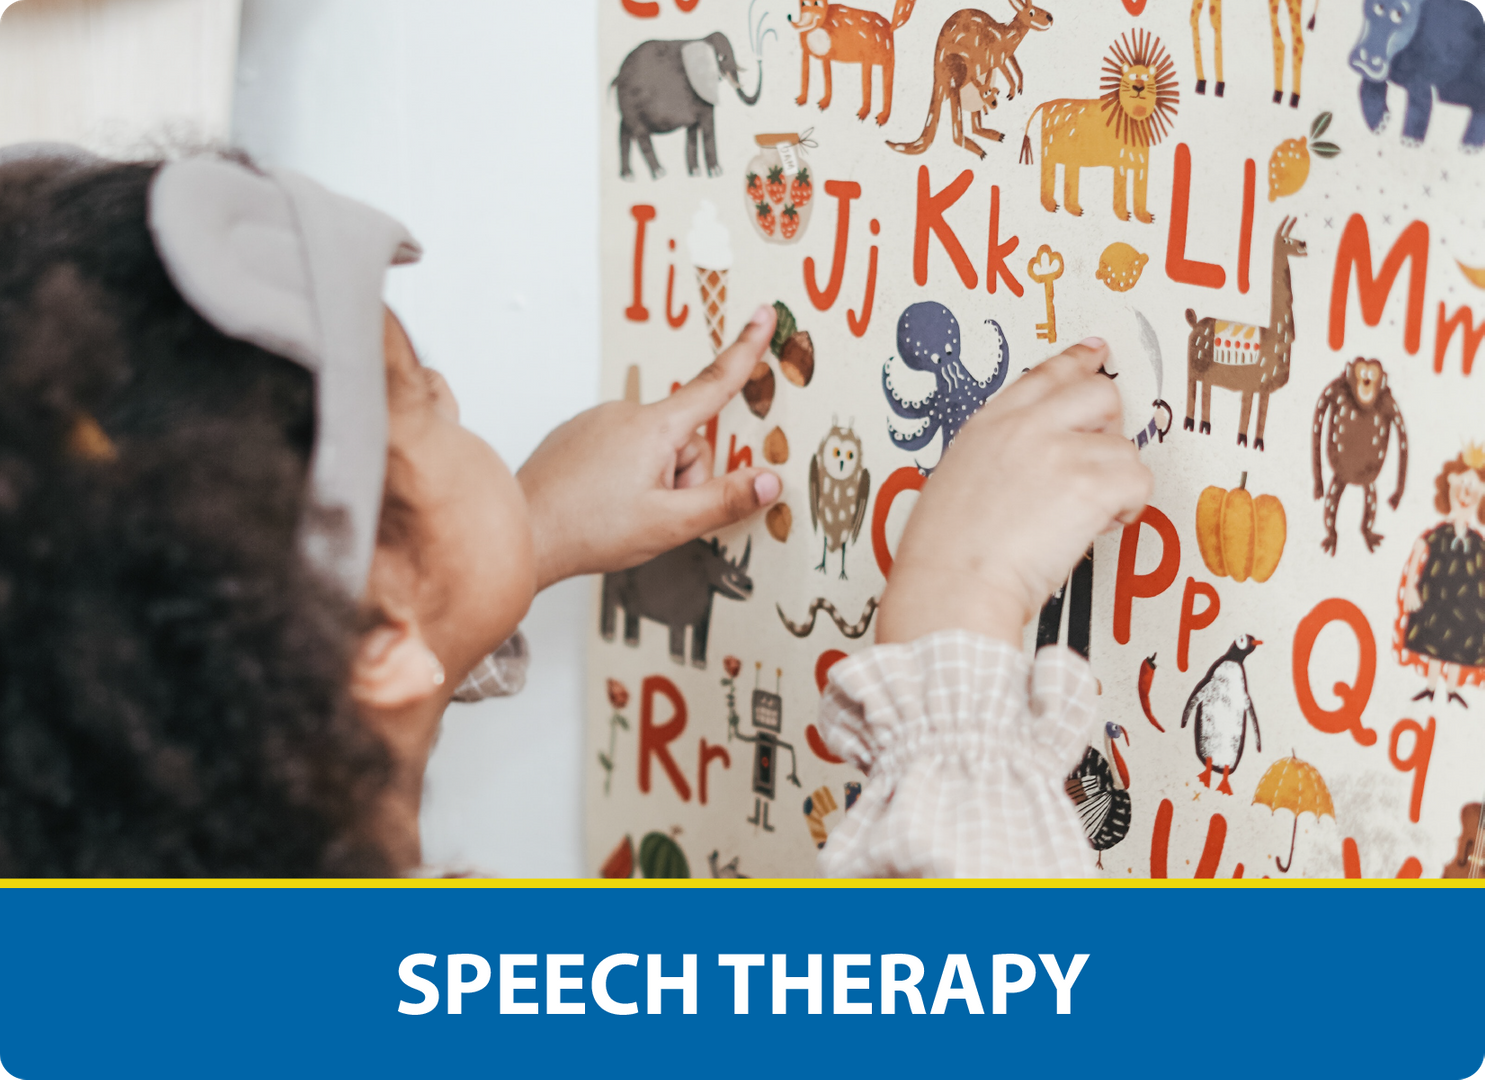 Speech Therapy: Girl pointing at alphabet poster